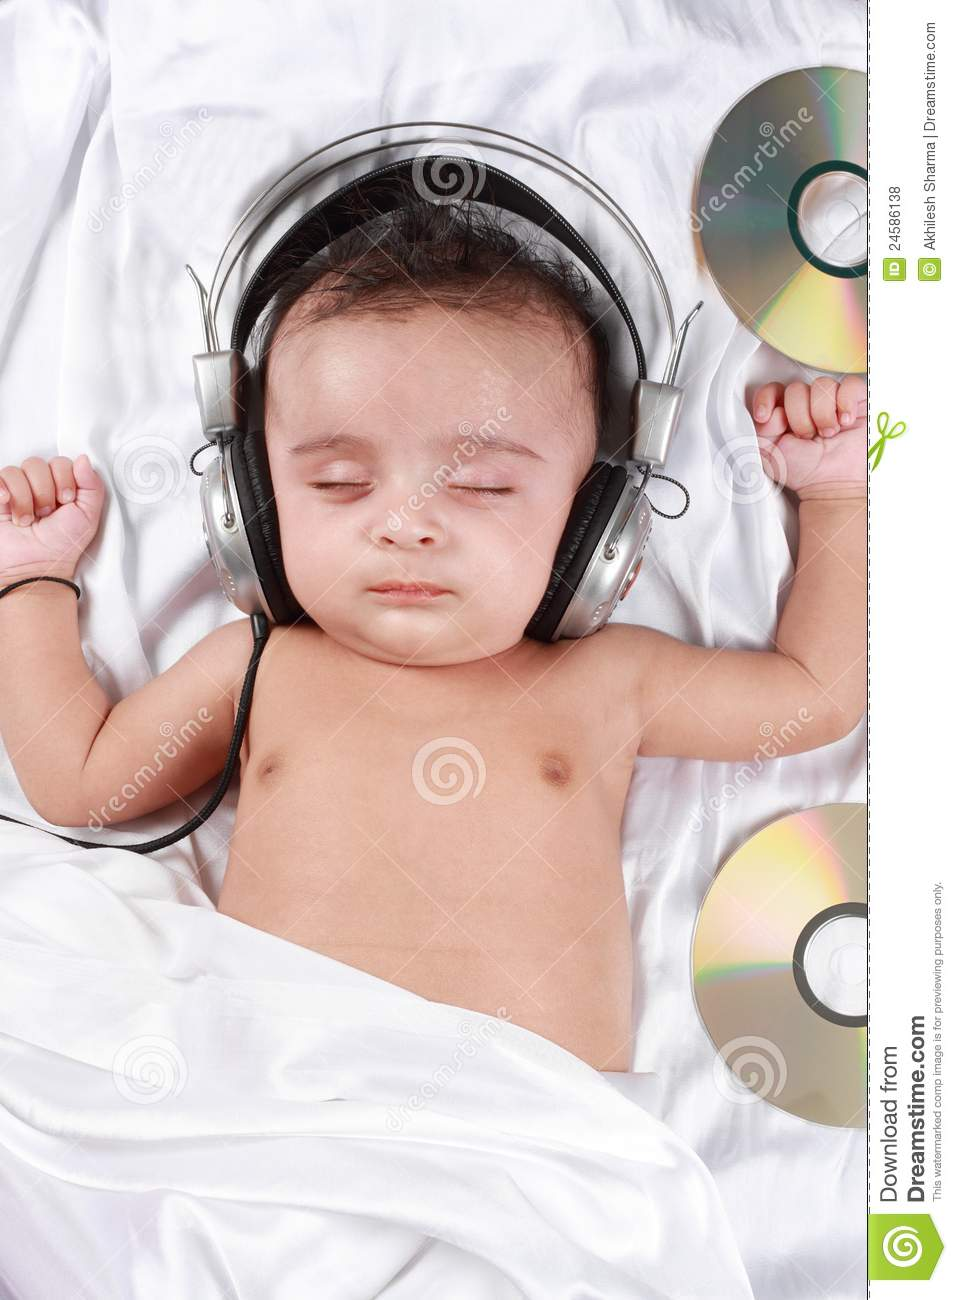 2 month old baby listening to music